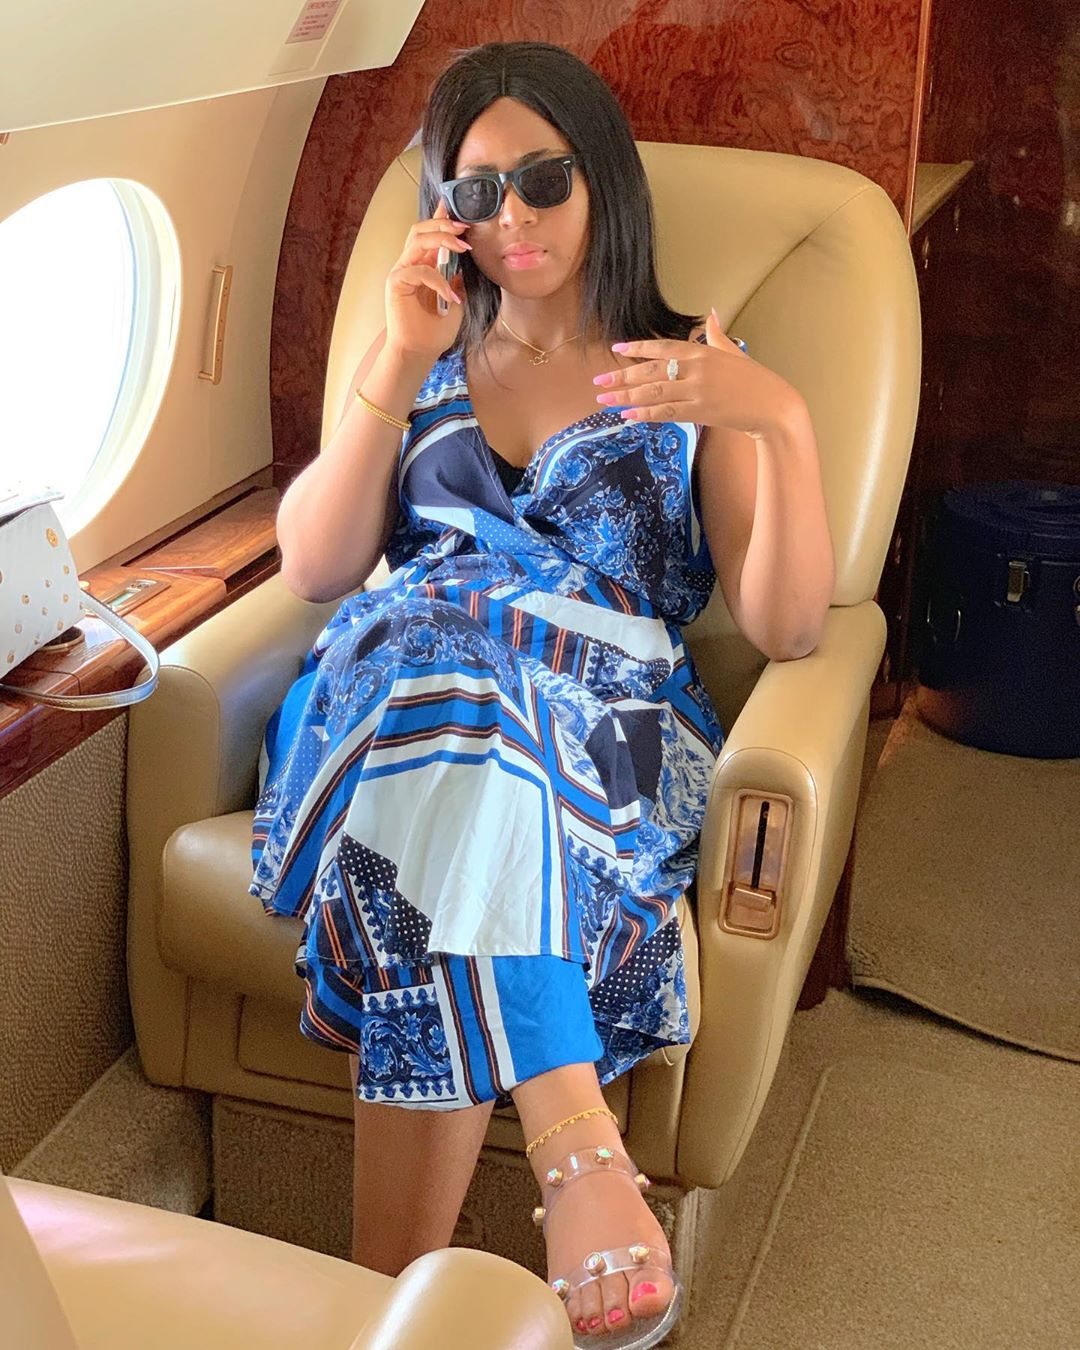 Regina shows off engagement ring in a private jet